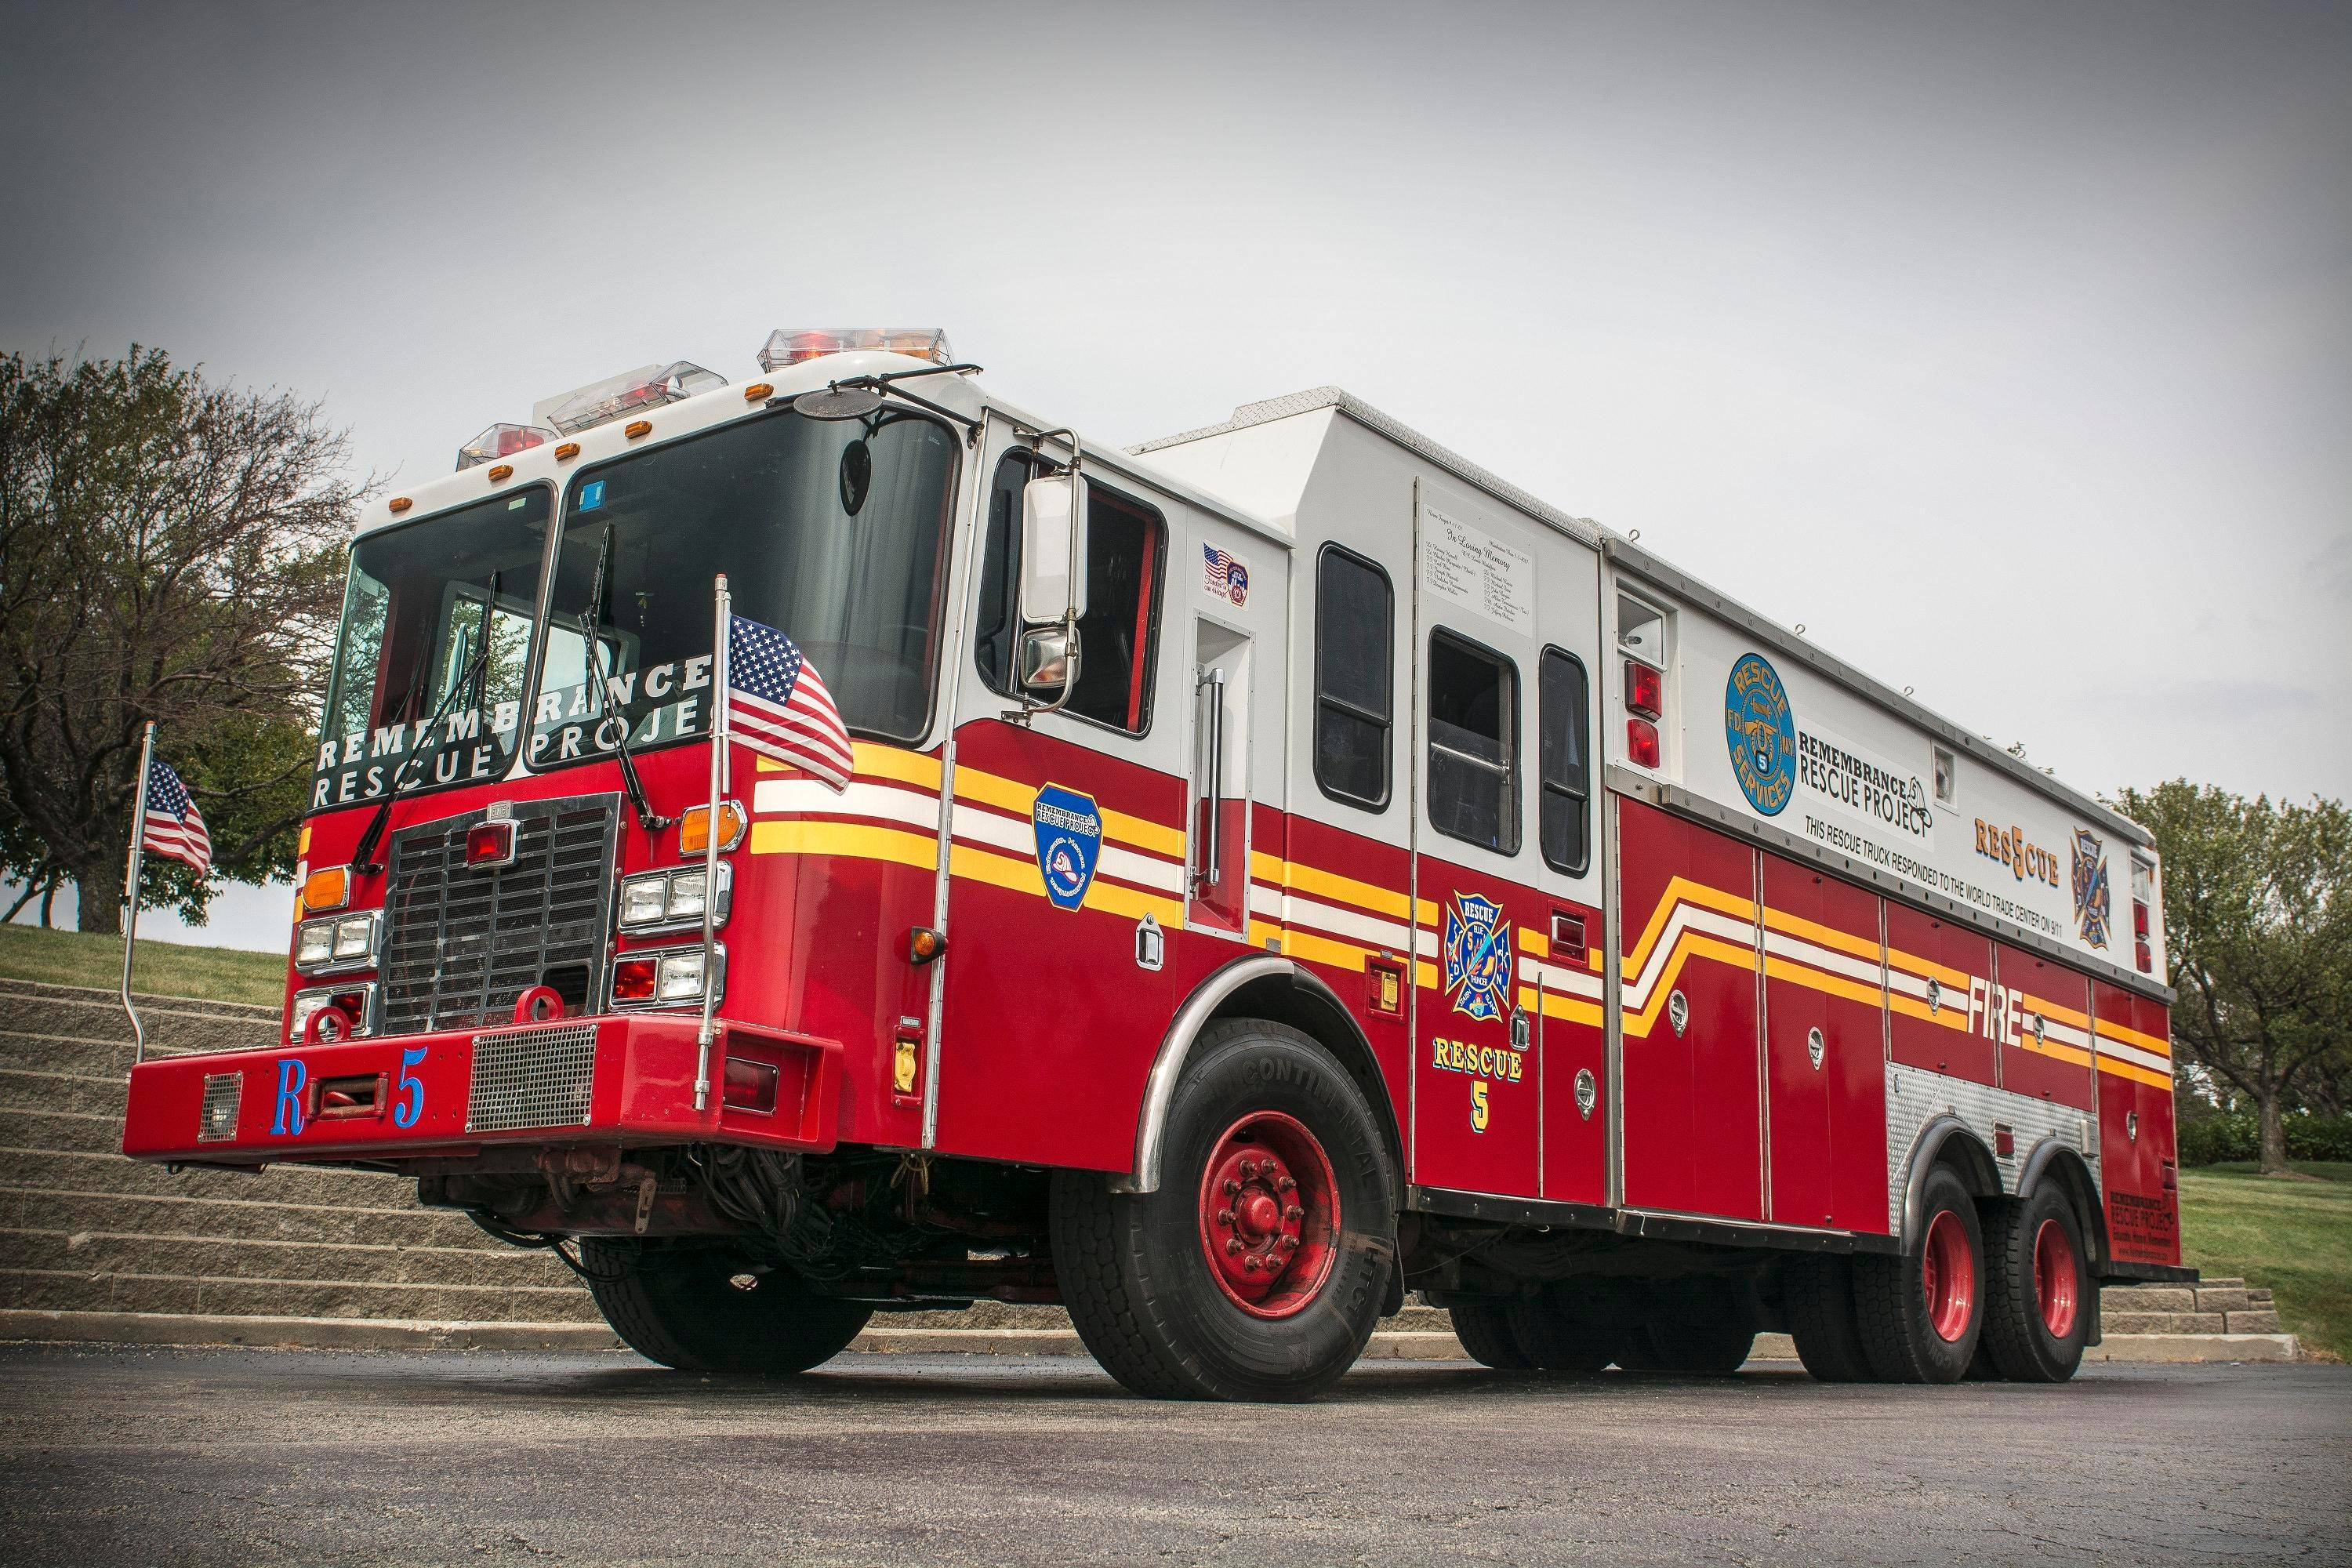 One of the fire trucks driven to the World Trade Center on Sept. 11 will be at the Randhurst Village Cruise Night. The Schaumburg-based Remembrance Rescue Project purchased and restored this truck after it was taken out of service.